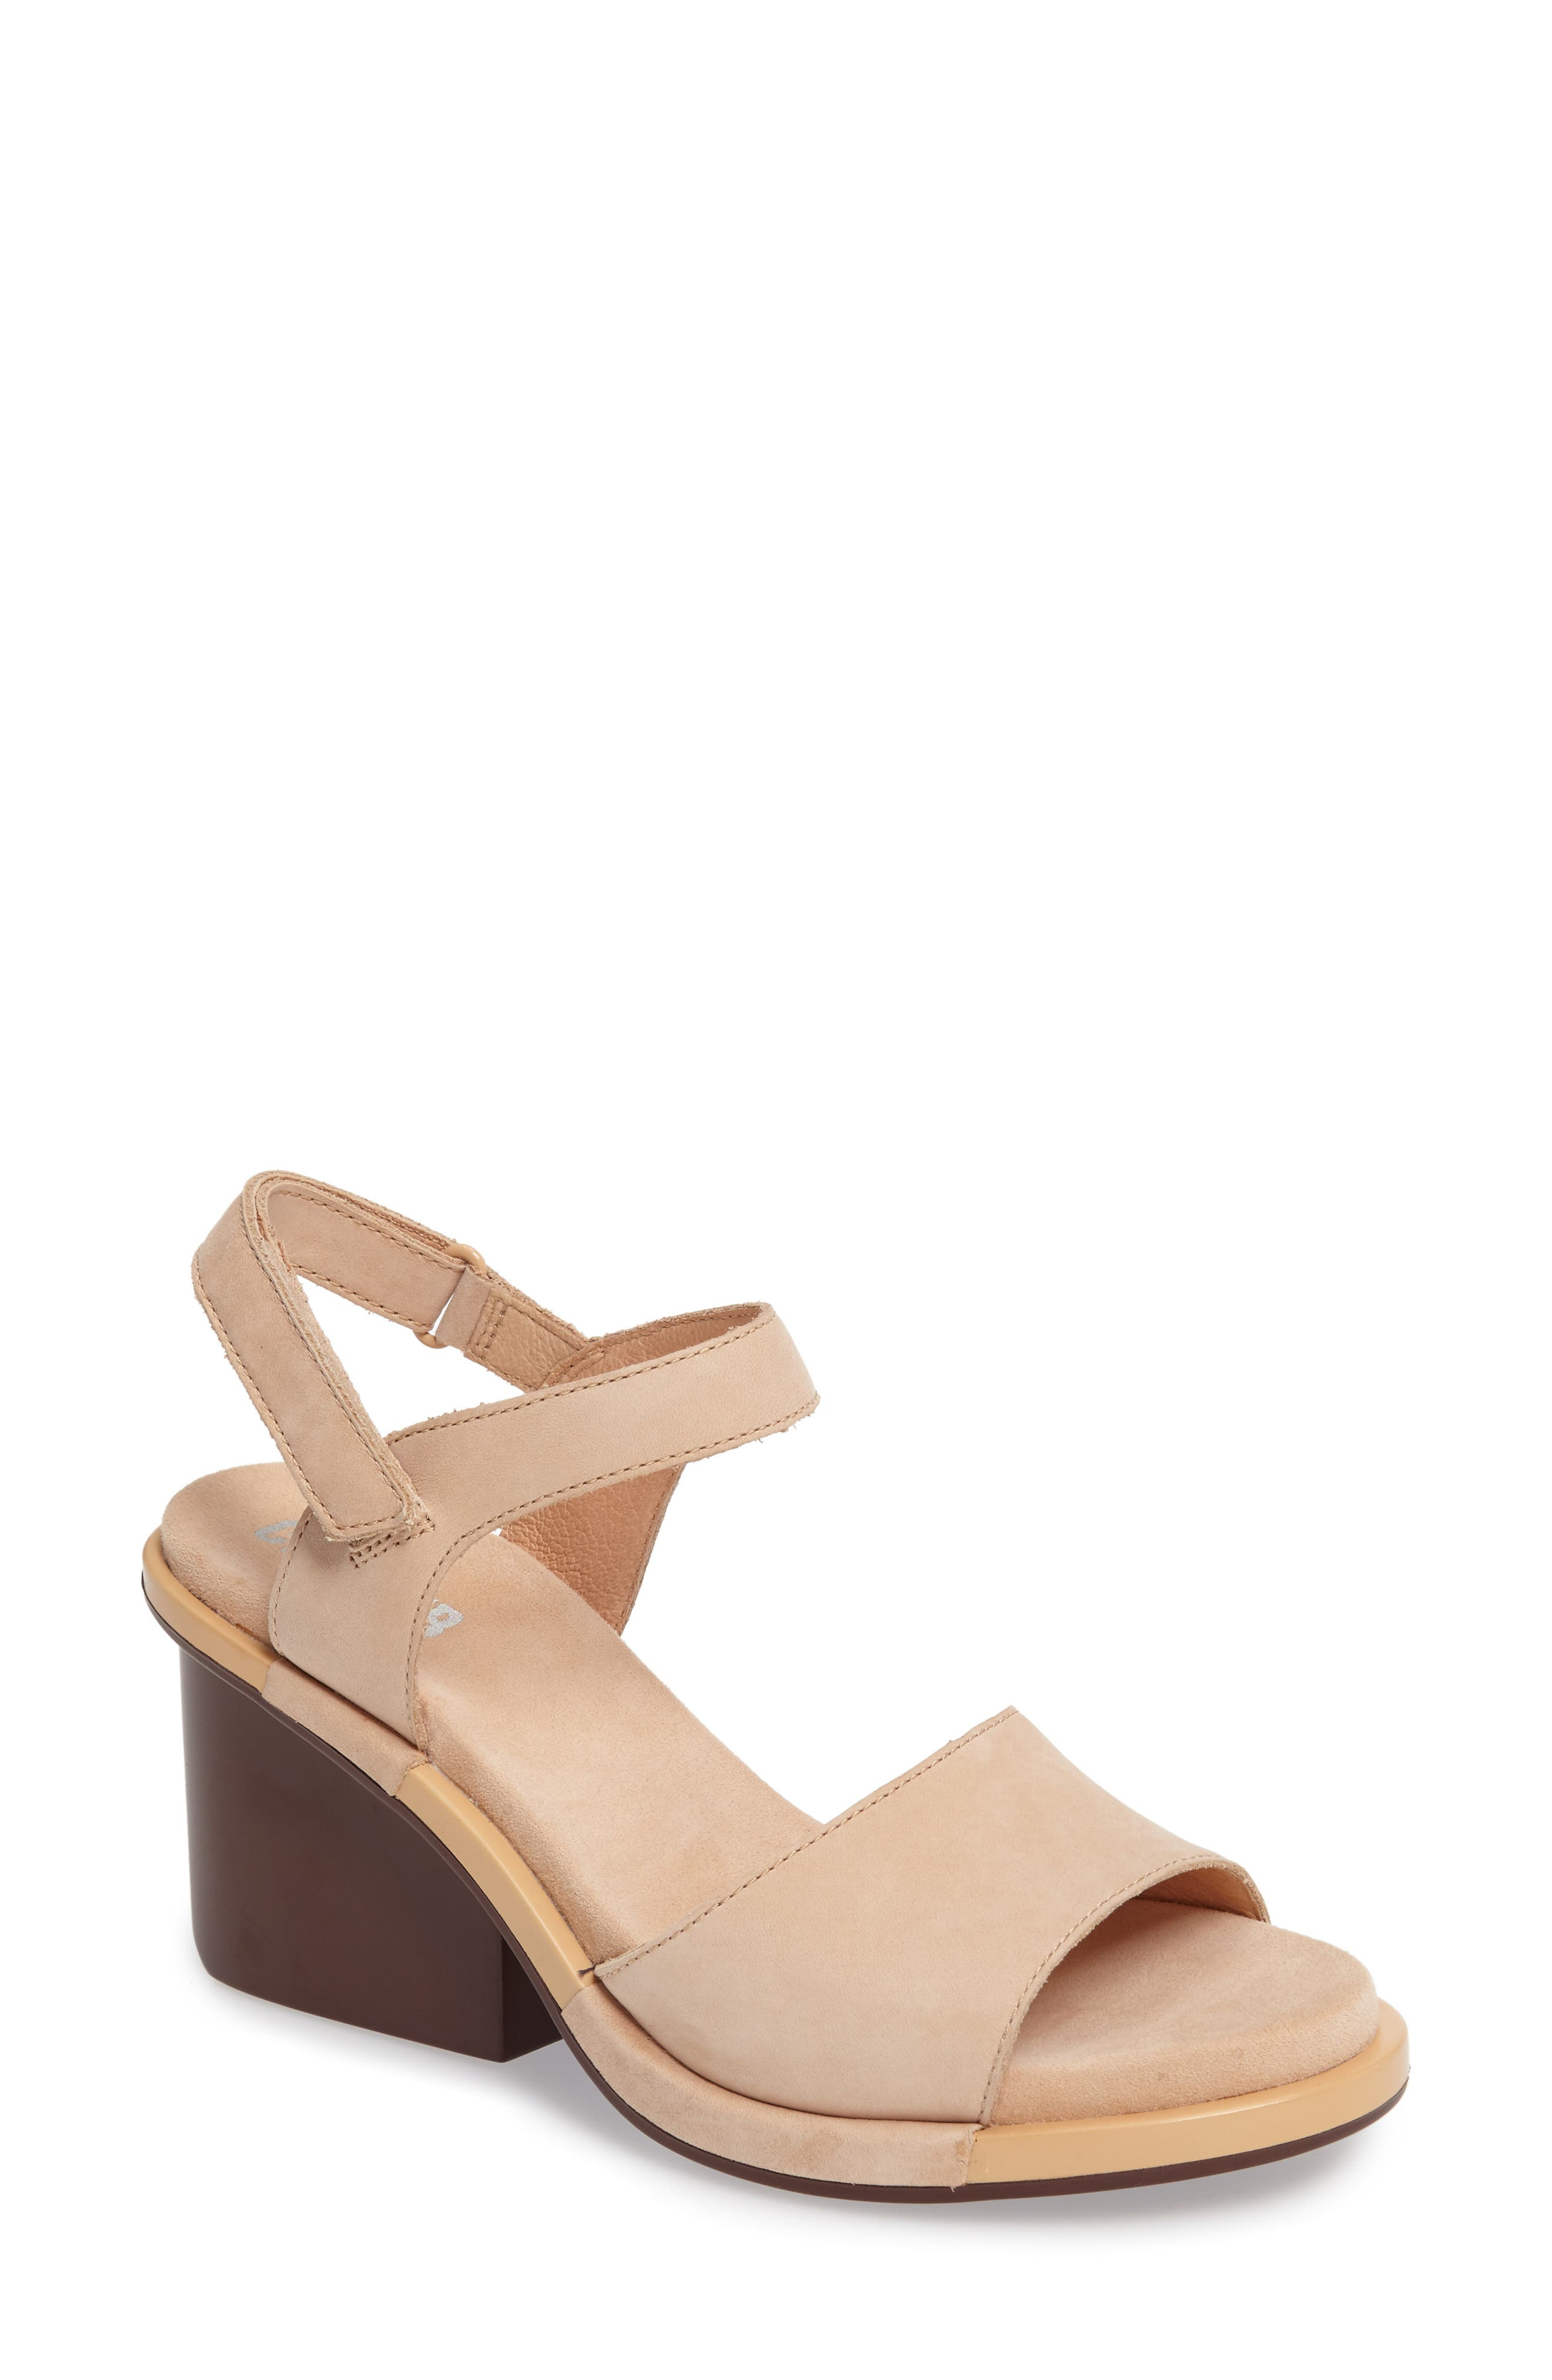 Ivy Ankle Strap Sandal,                         Main,                         color, BEIGE LEATHER